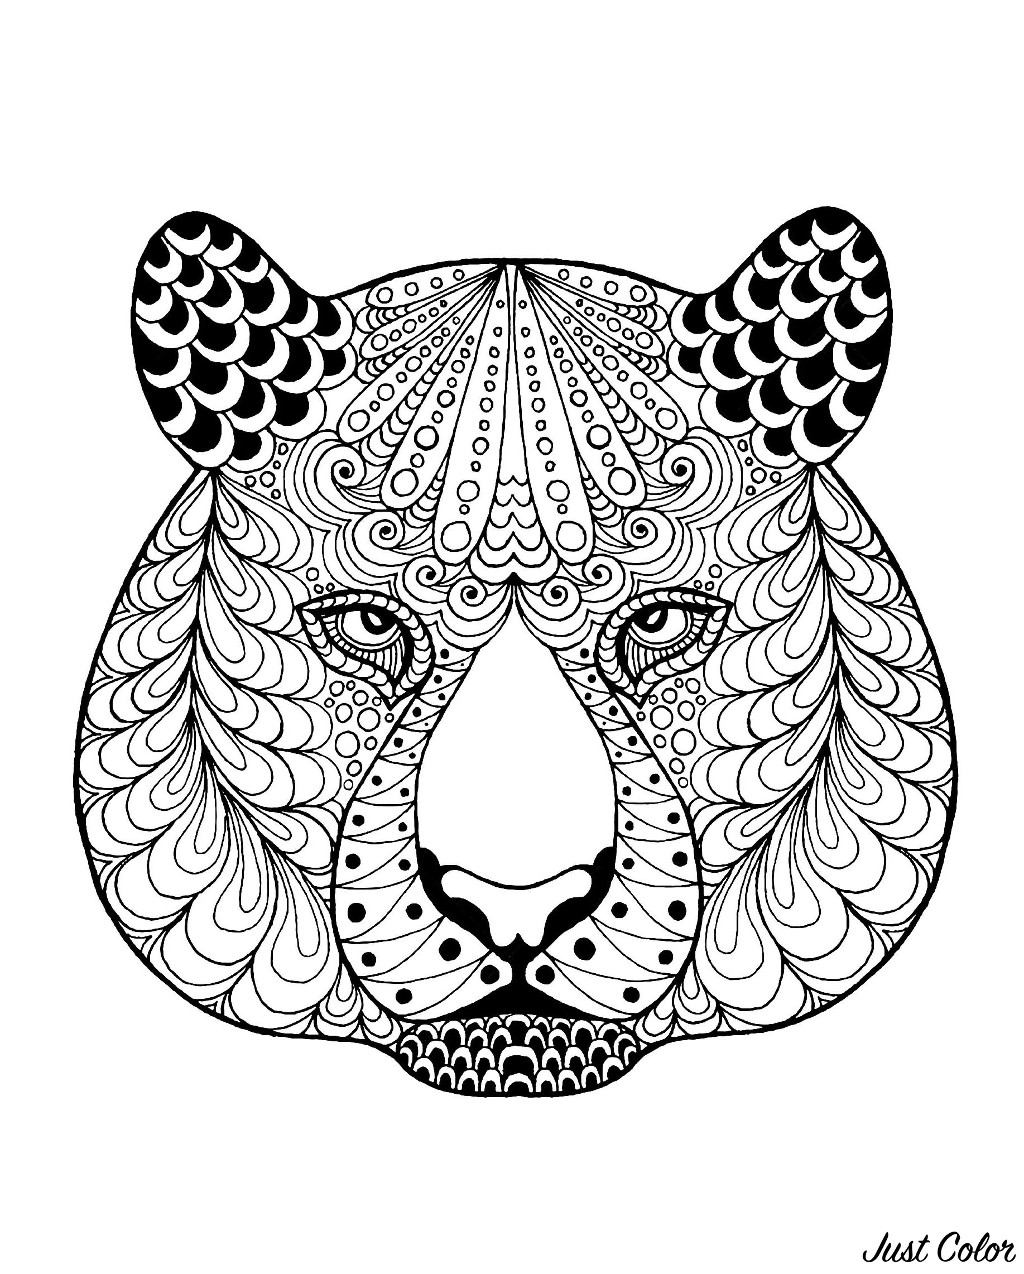 Coloriage De Tigre A Telecharger Gratuitement Coloriage De